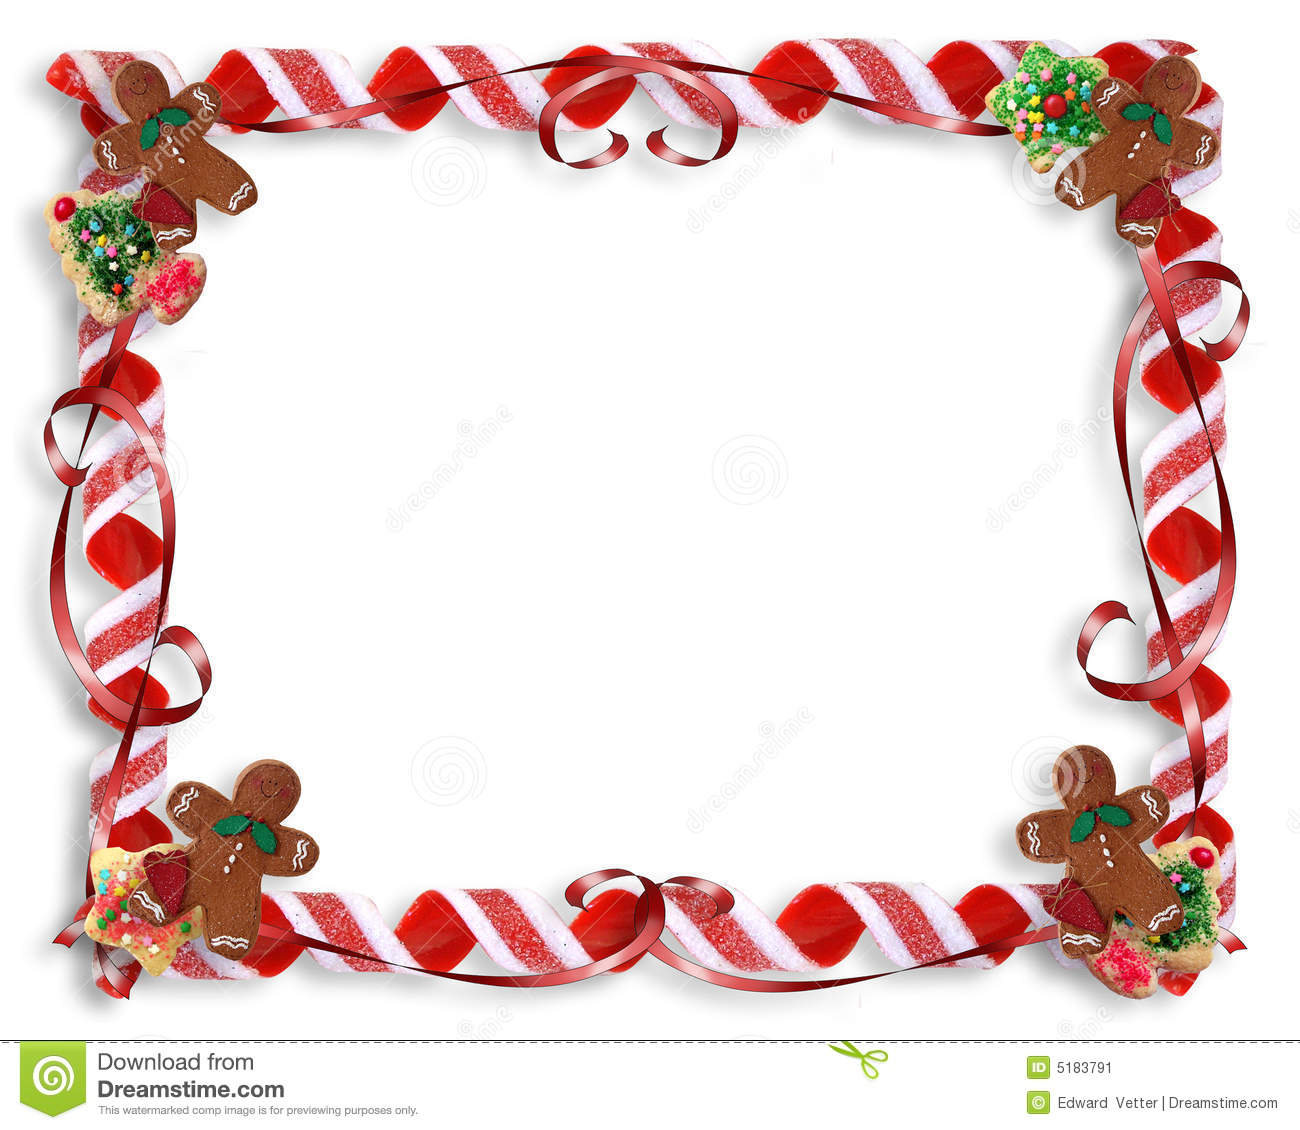 Christmas Cookies And Candy Frame Stock Image   Image  5183791